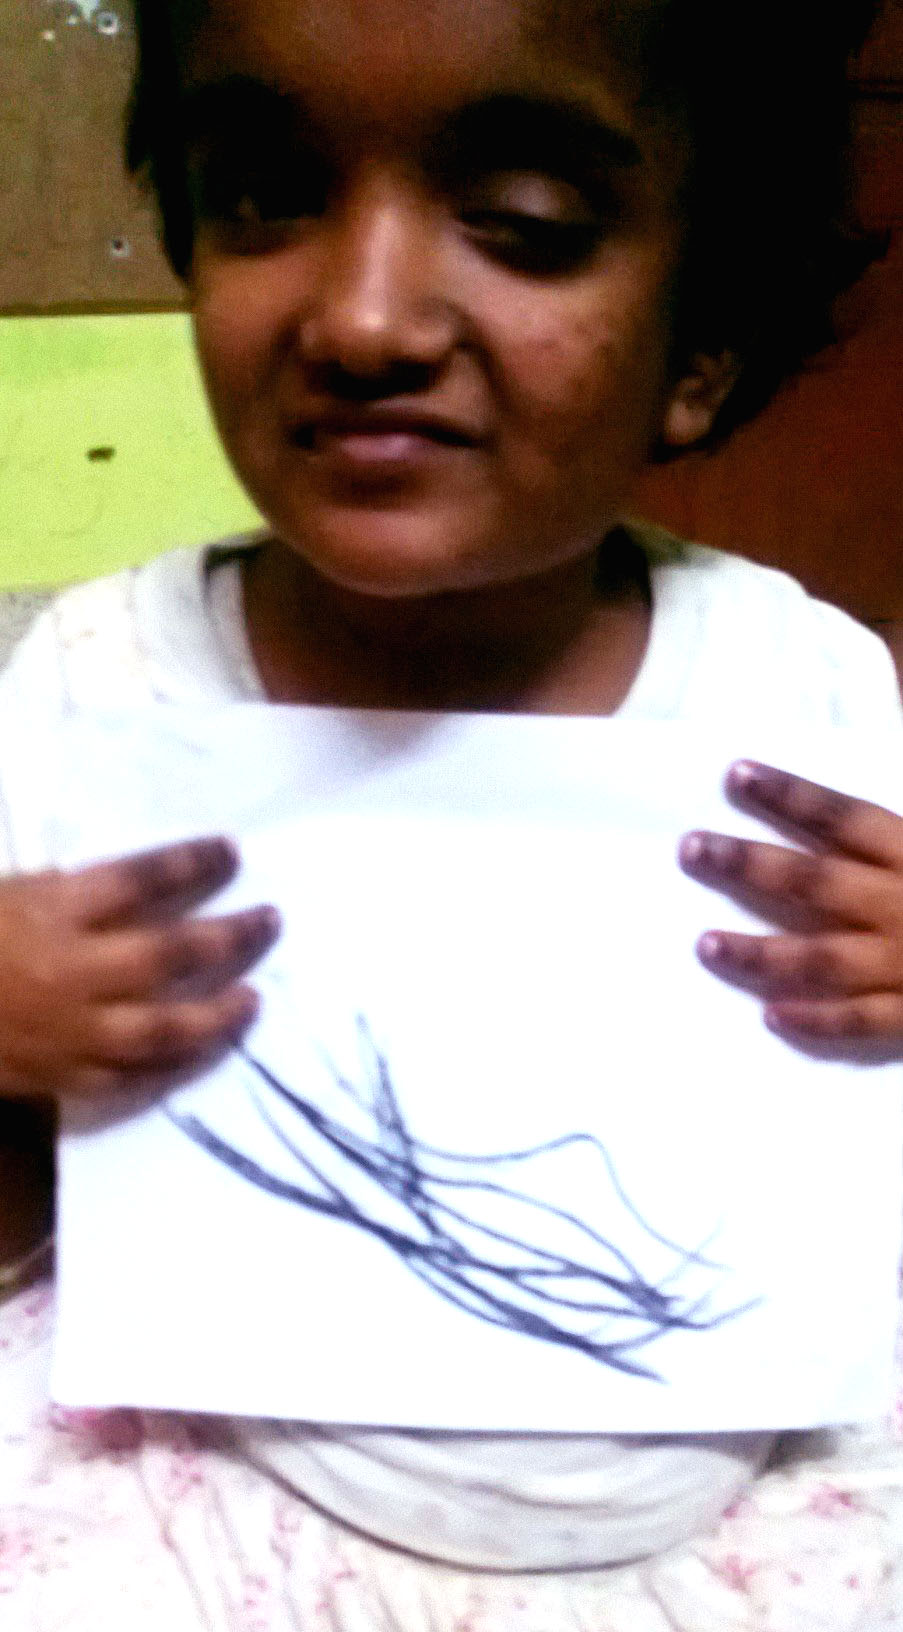 shuktara - Moni Blackstar art project